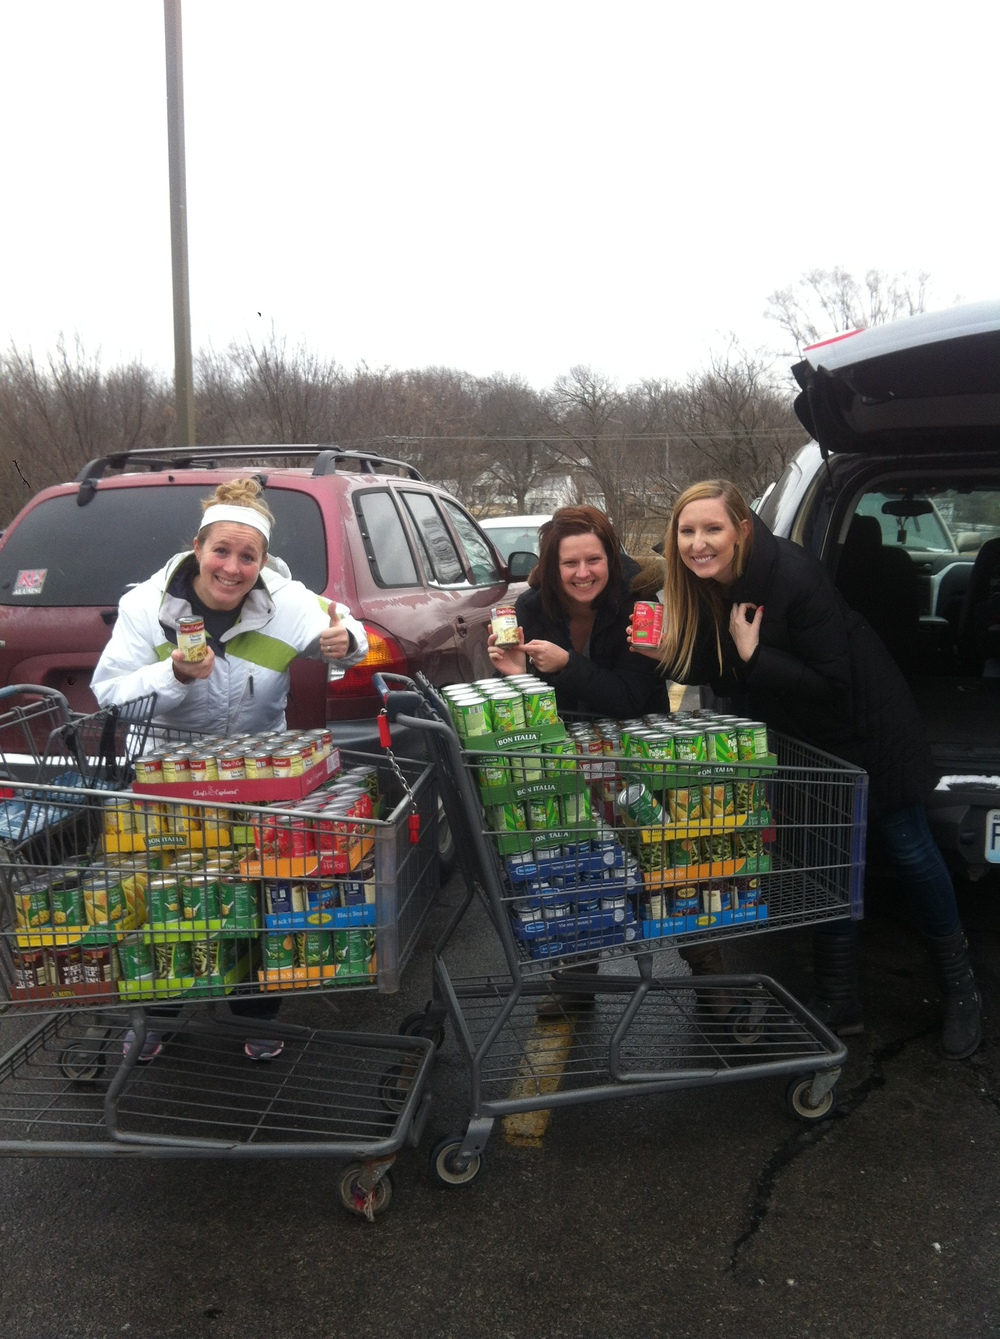 RNL's Canned Food Drive for Harvesters